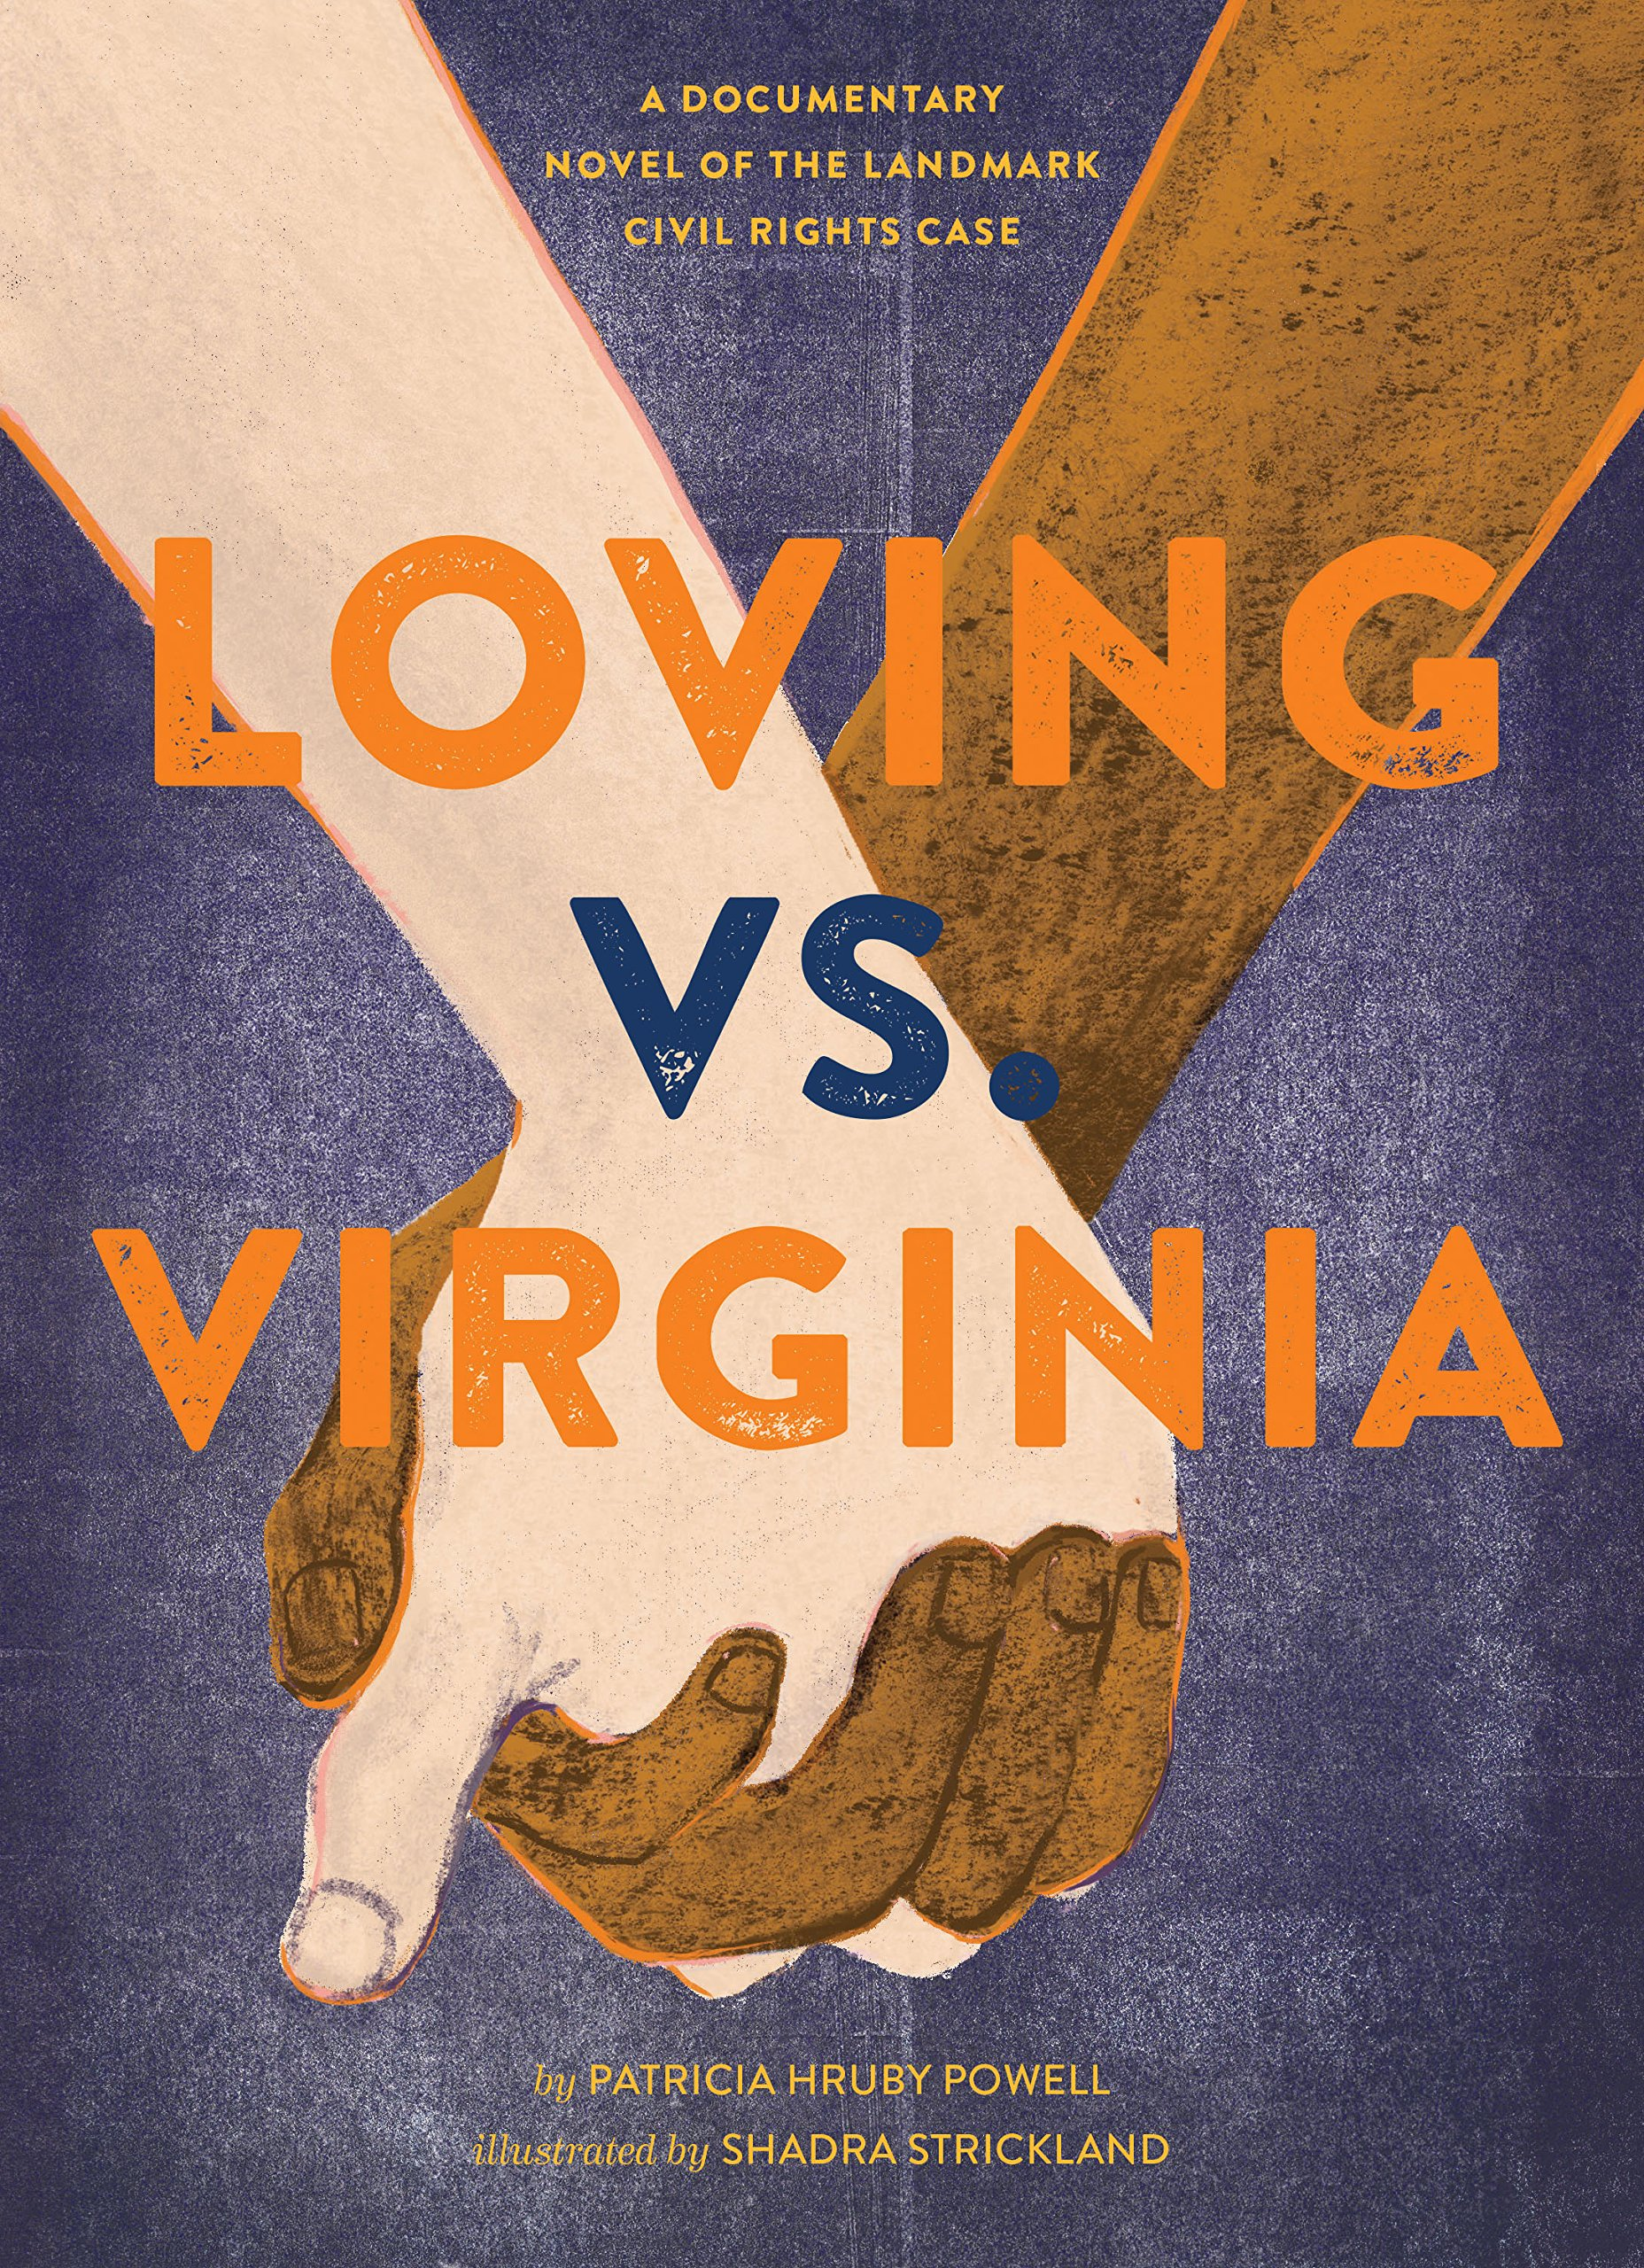 Loving vs. Virginia: A Documentary Novel of the Landmark Civil Rights Case by Patricia Hruby Powell